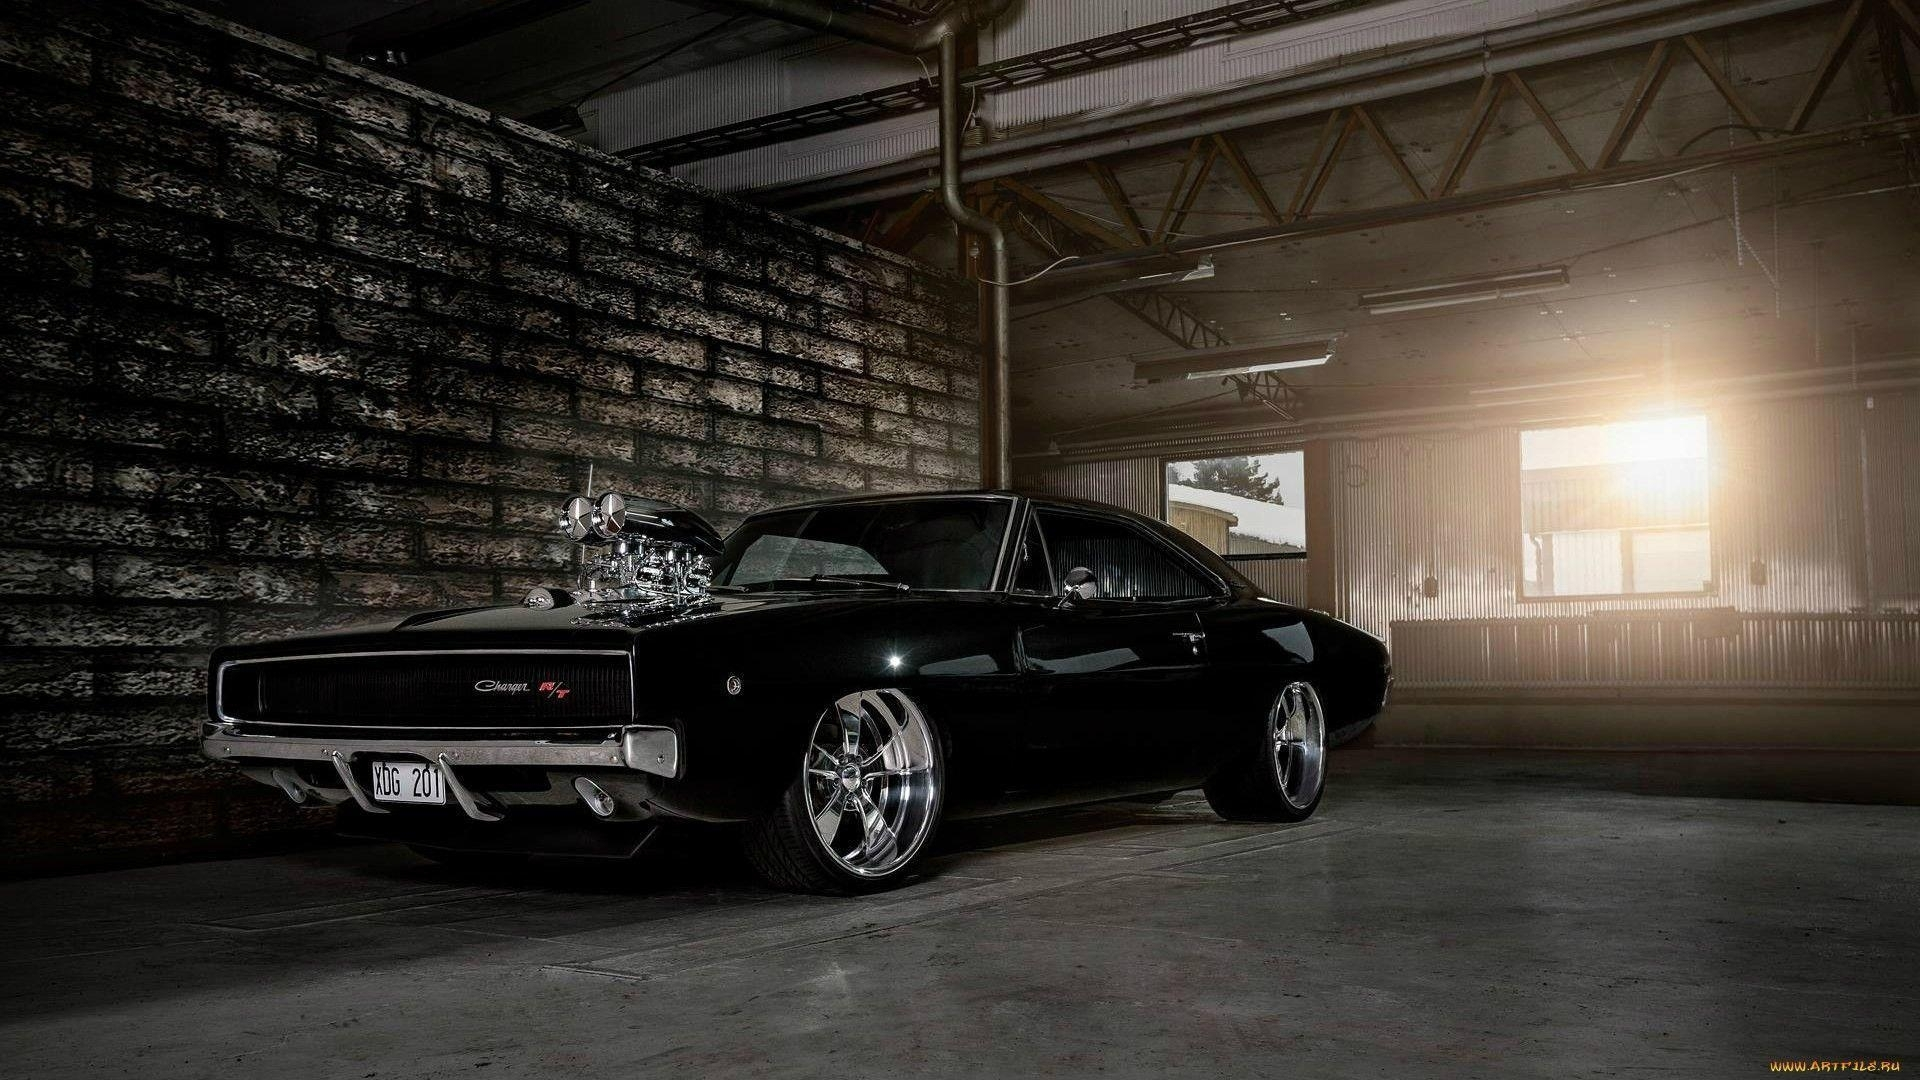 10 New Dodge Charger 1970 Wallpaper Hd FULL HD 1080p For PC Desktop